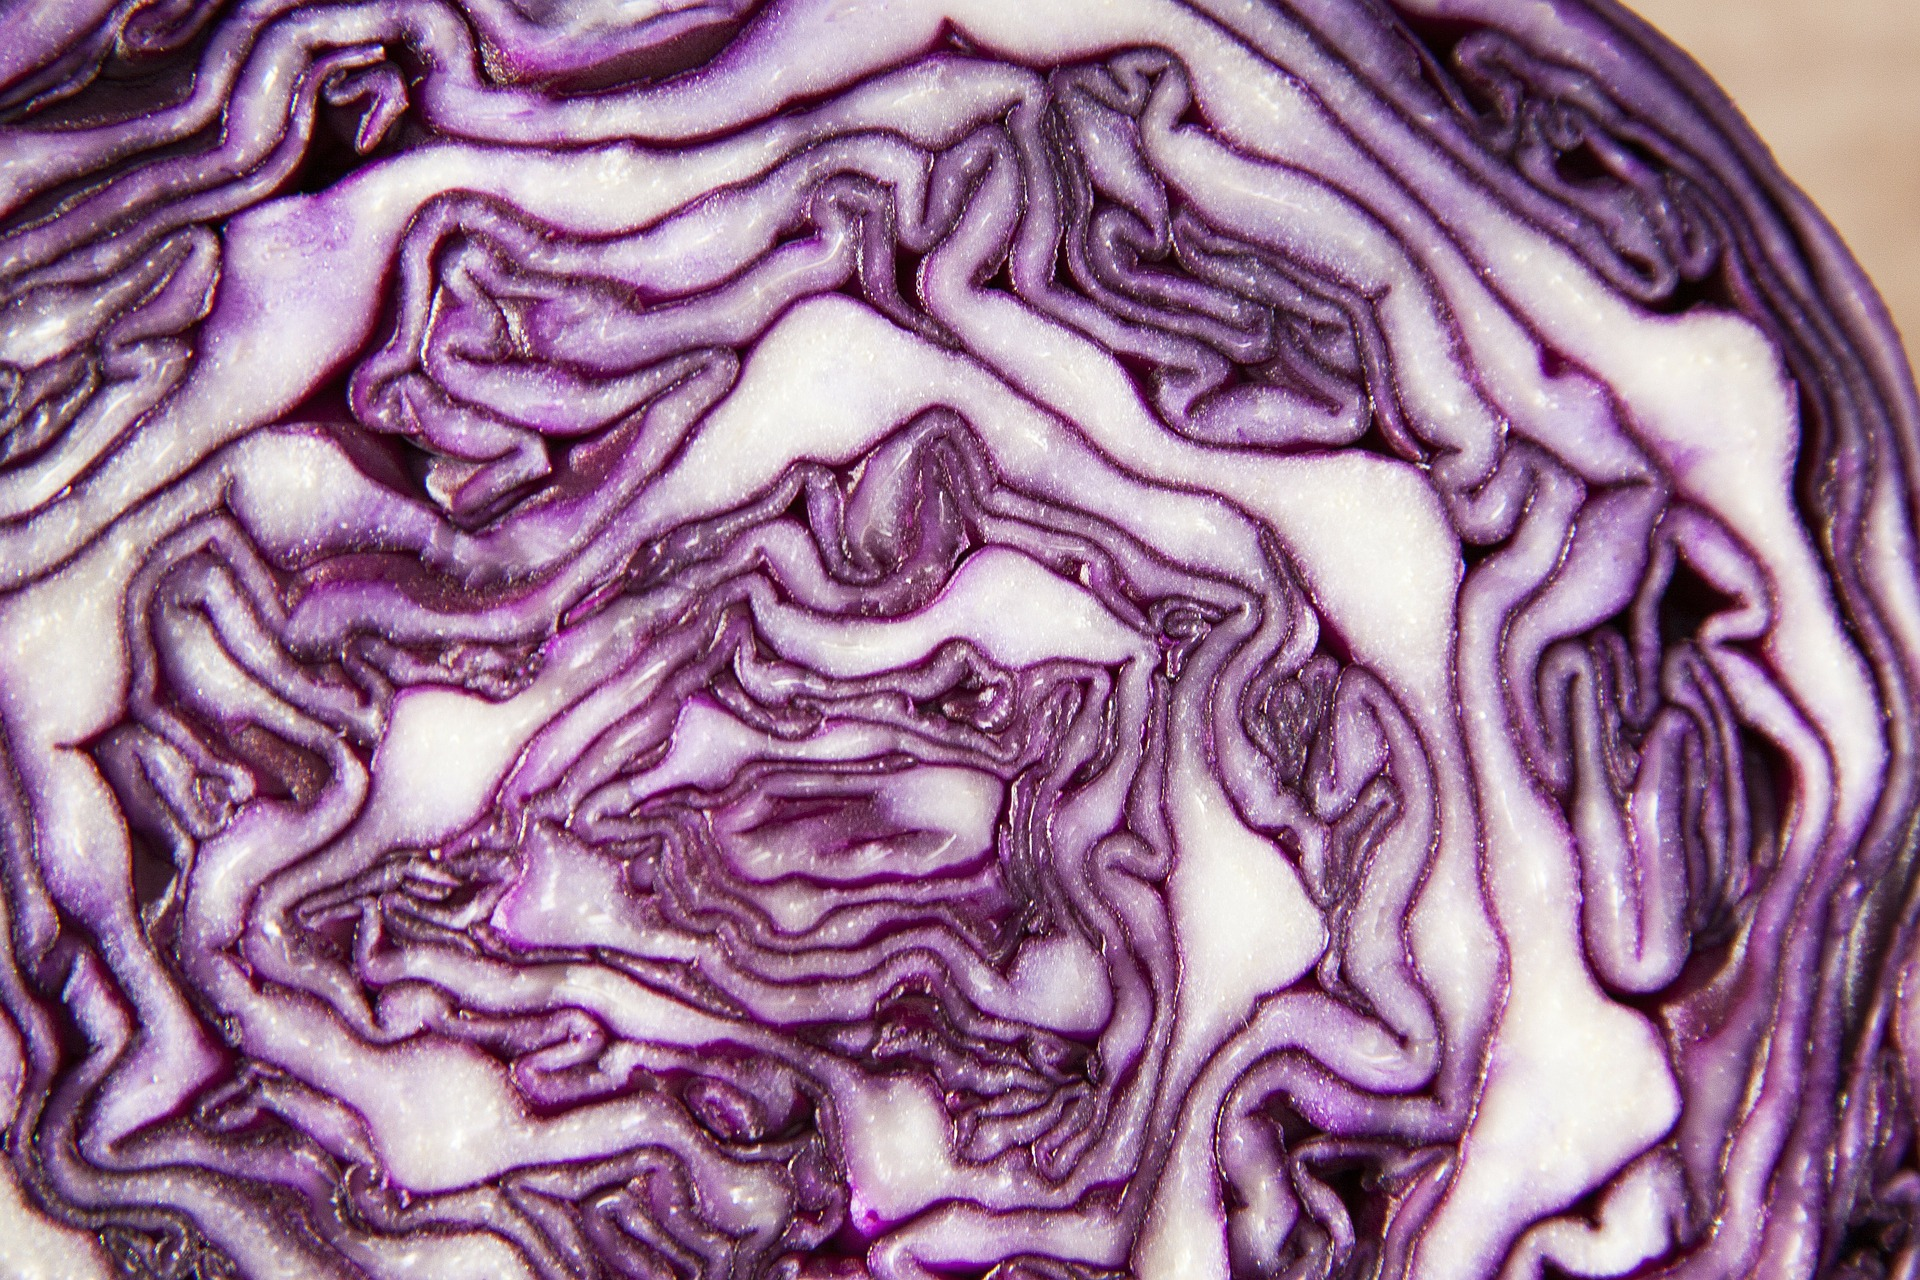 red-cabbage-73364_1920